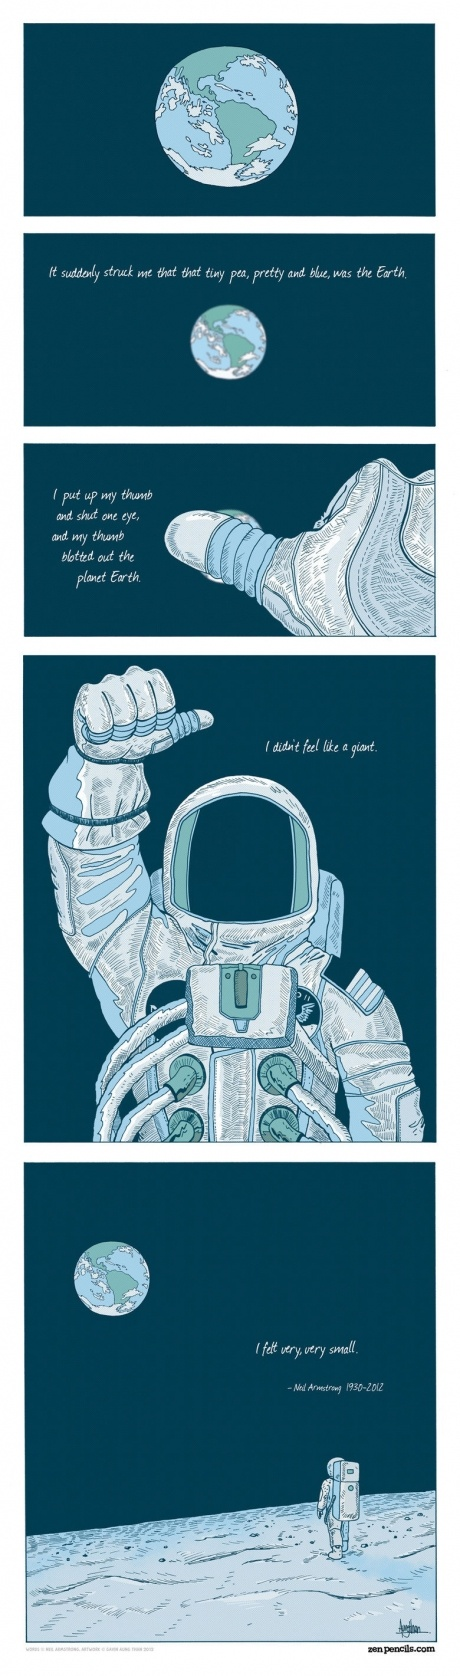 """I felt very, very small."" RIP Neil Armstrong."